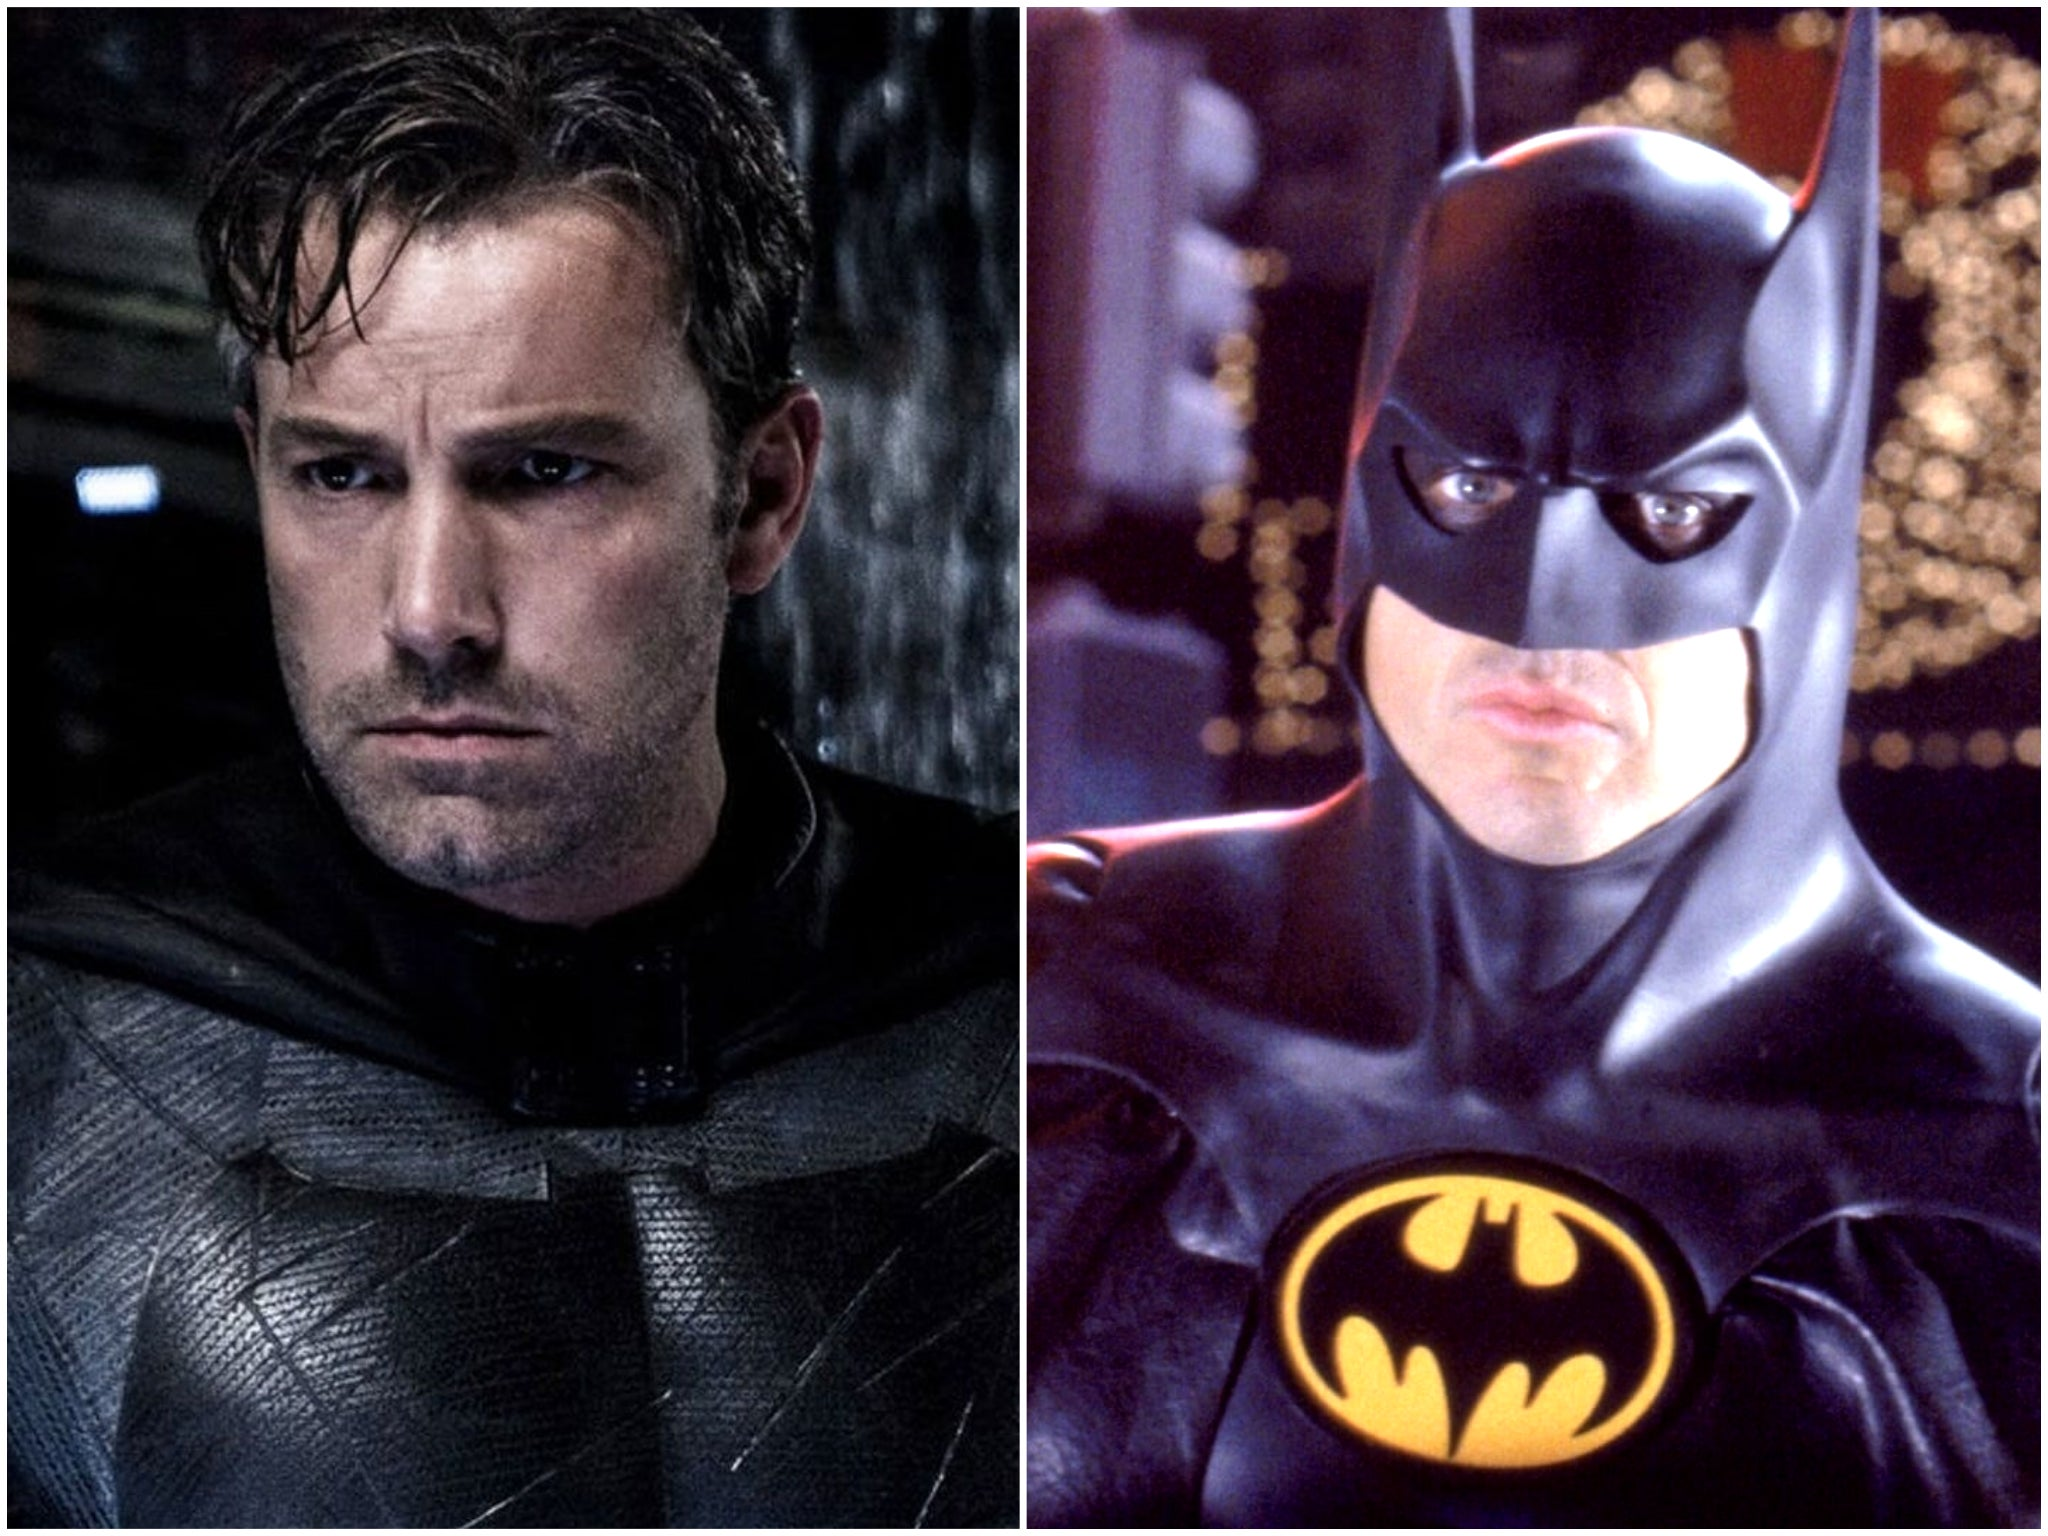 Batman - latest news, breaking stories and comment - The Independent